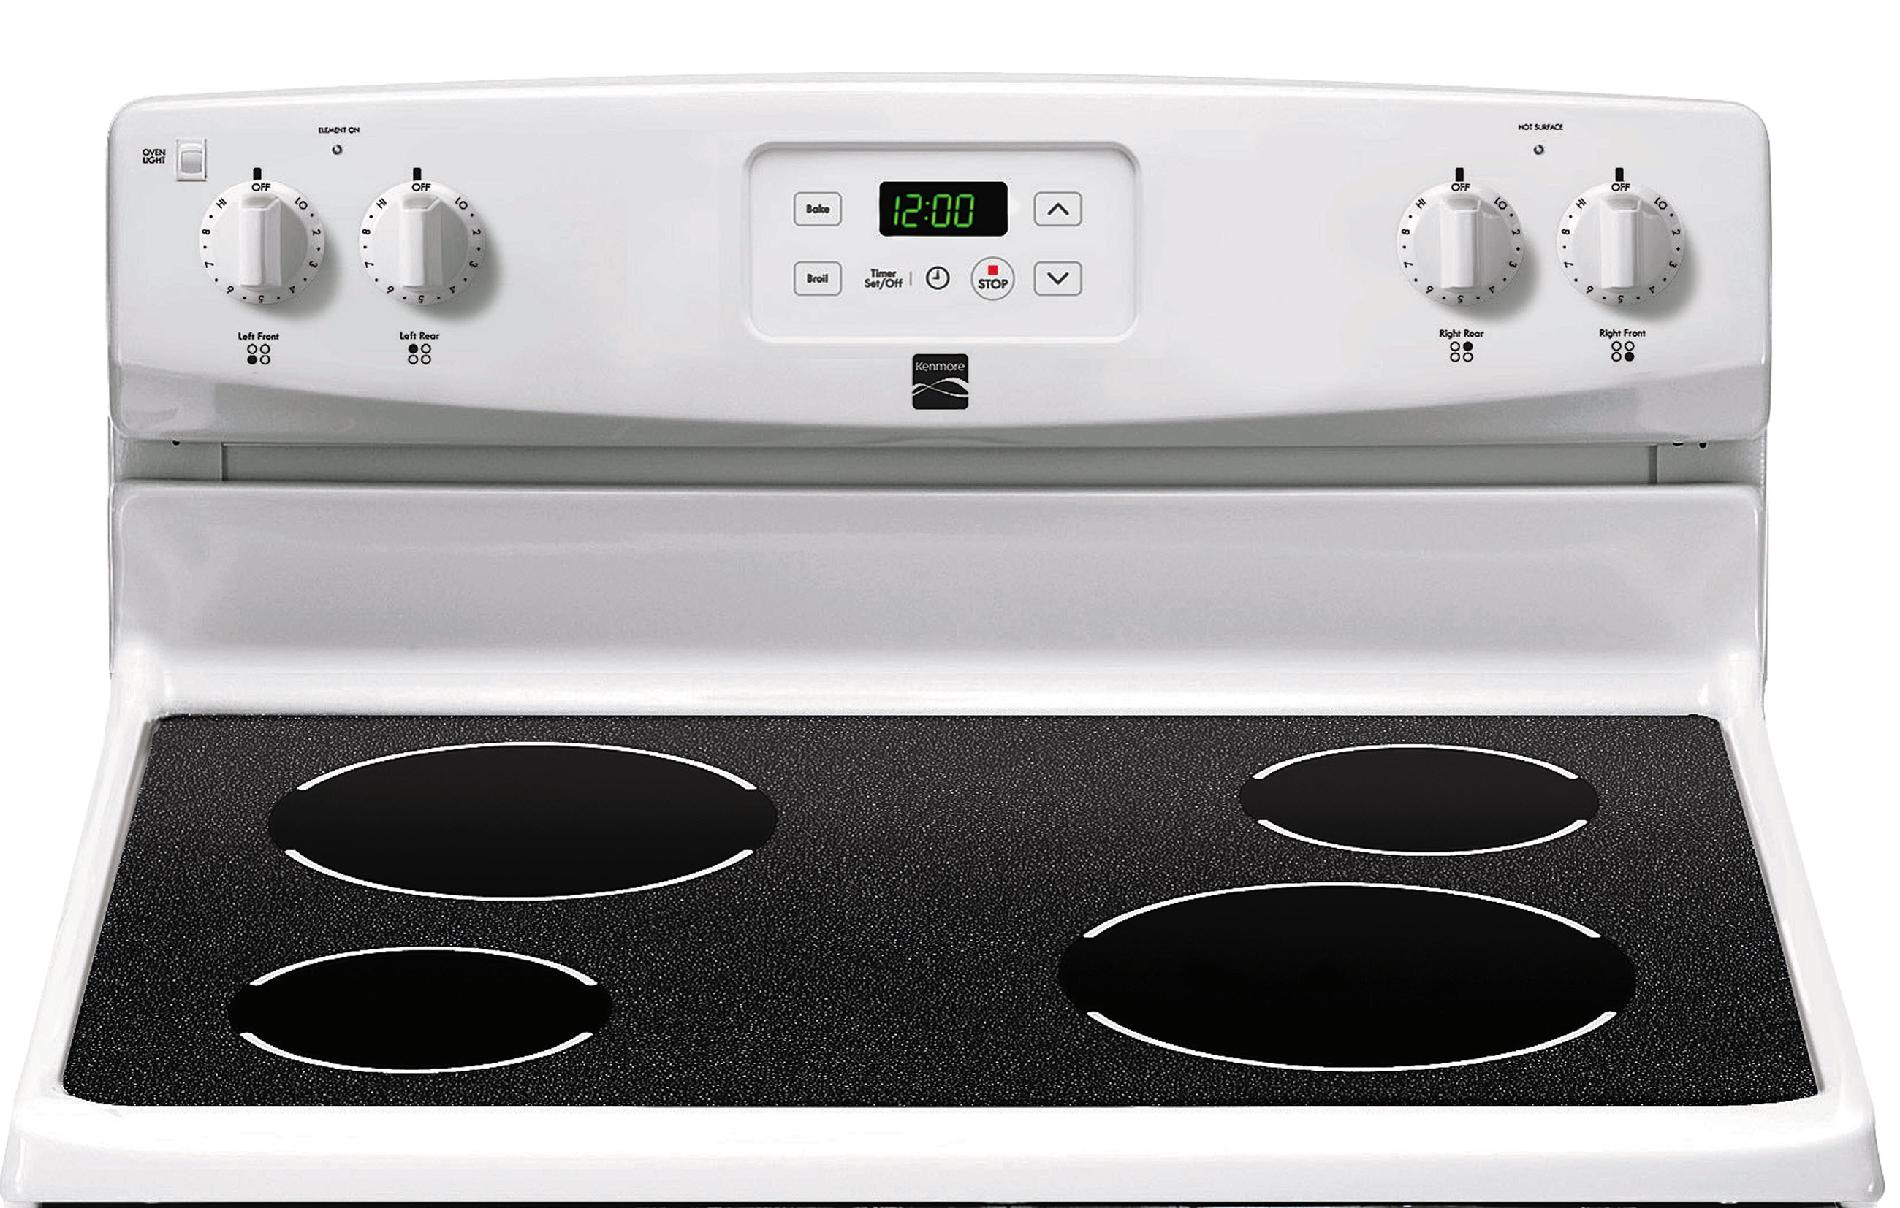 Kenmore 4.9 cu. ft. Electric Range